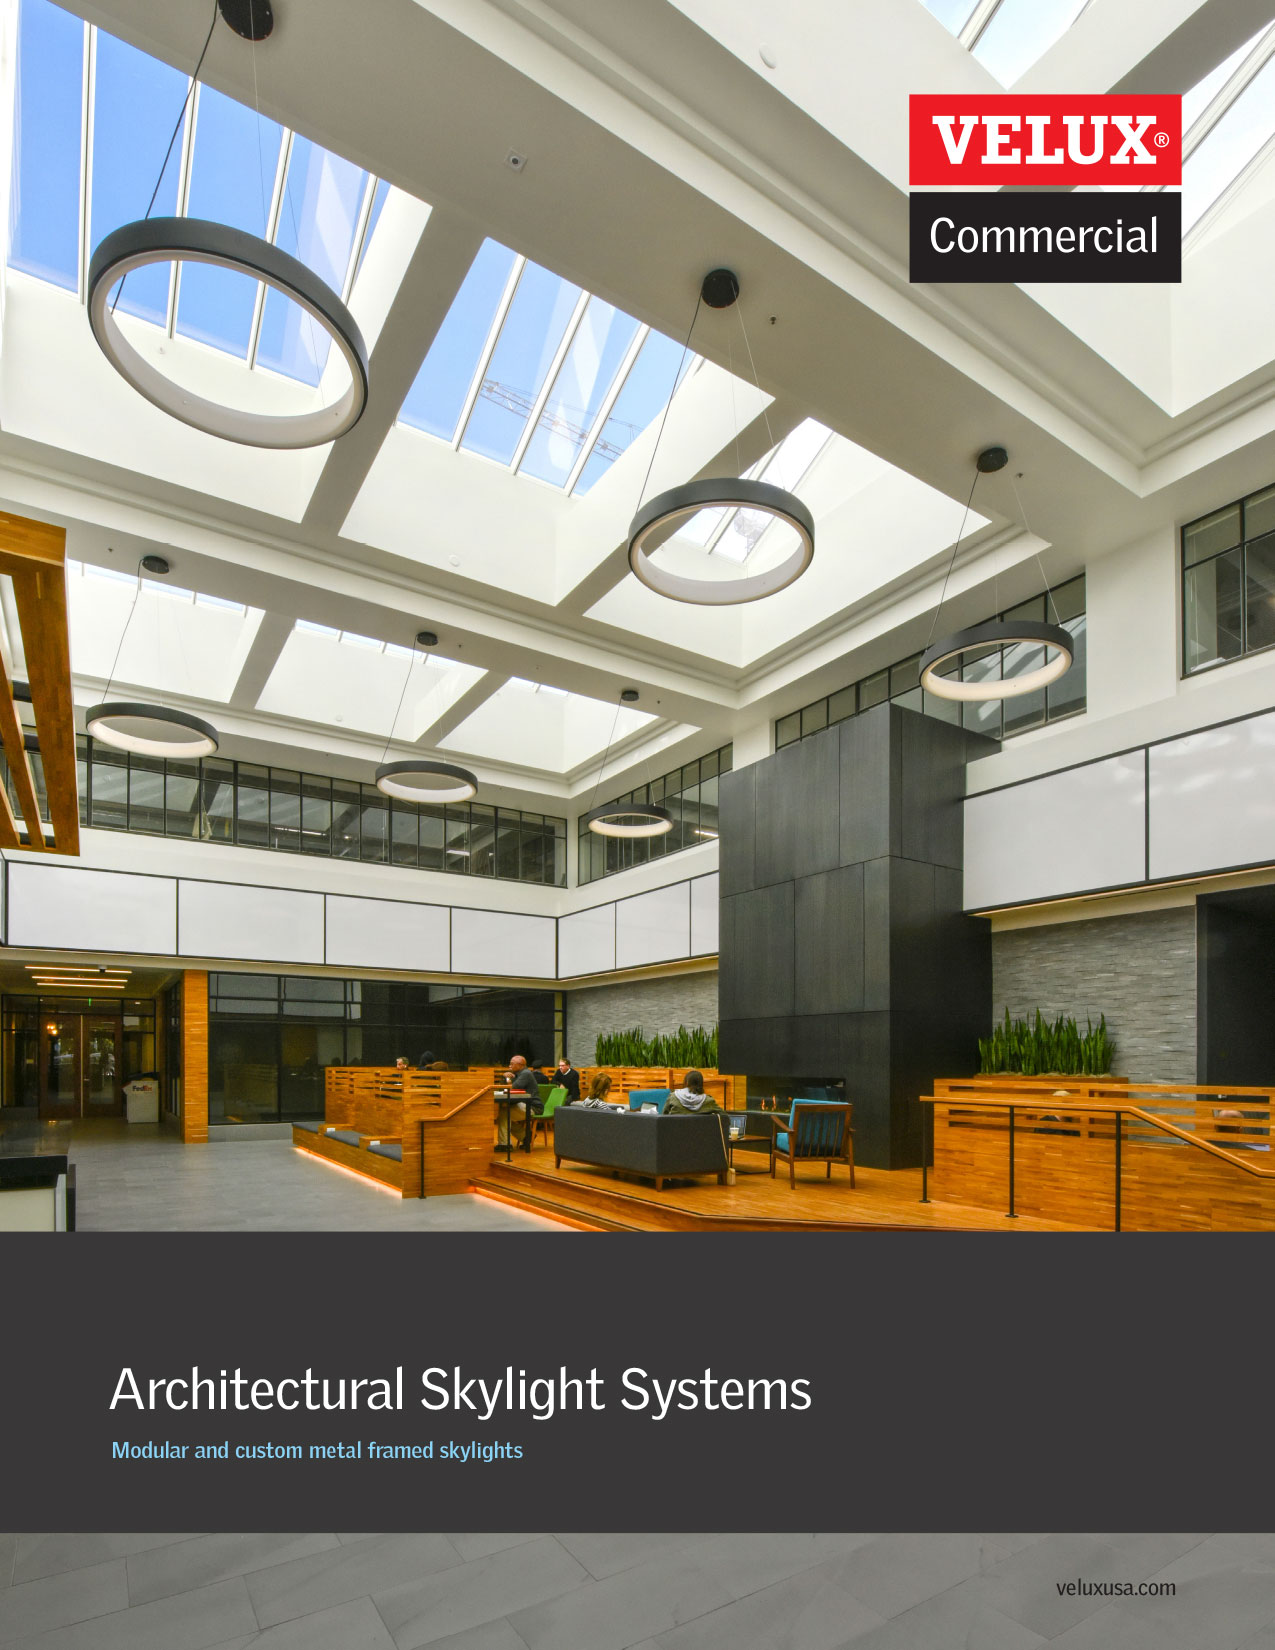 Architectural Skylight Systems